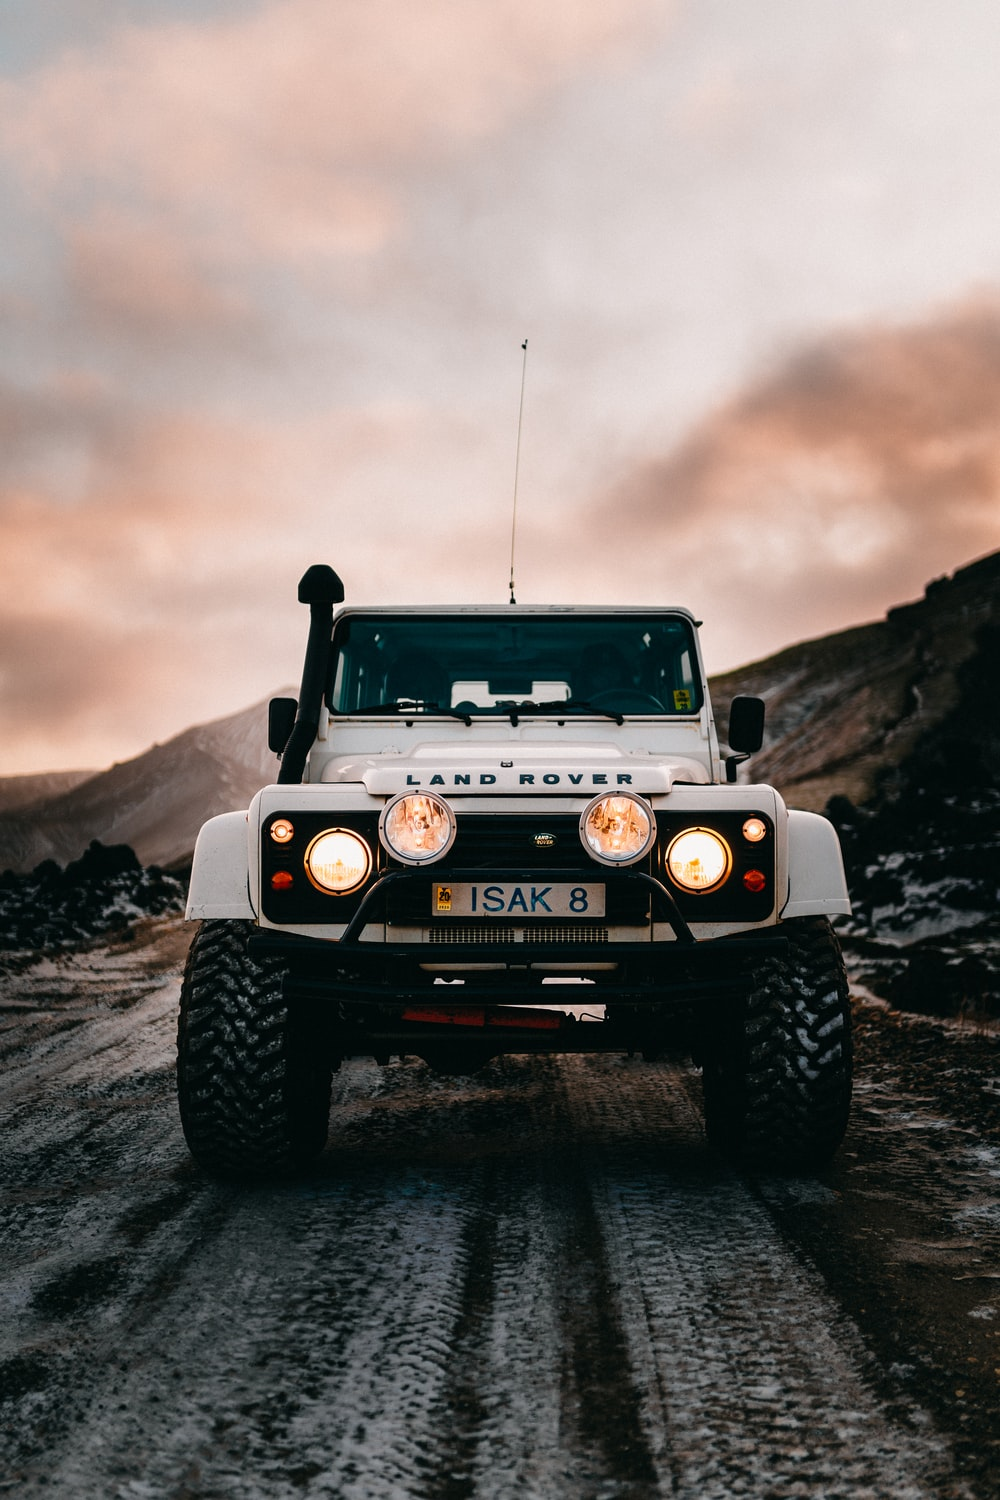 grayscale photo of black jeep wrangler on rocky hill